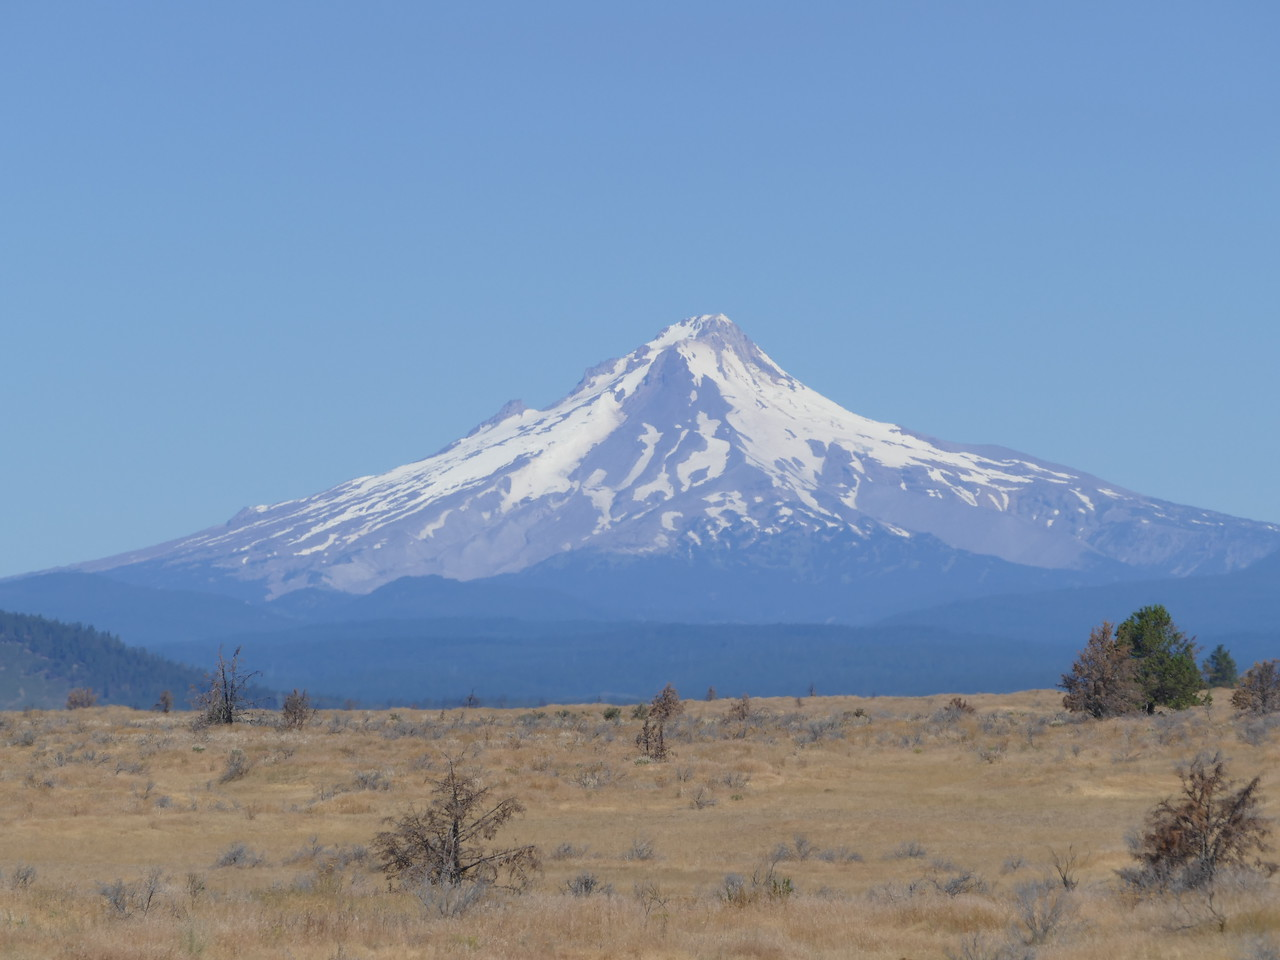 A view of Mount Hood from Hwy 26 through the Warm Springs Reservation.